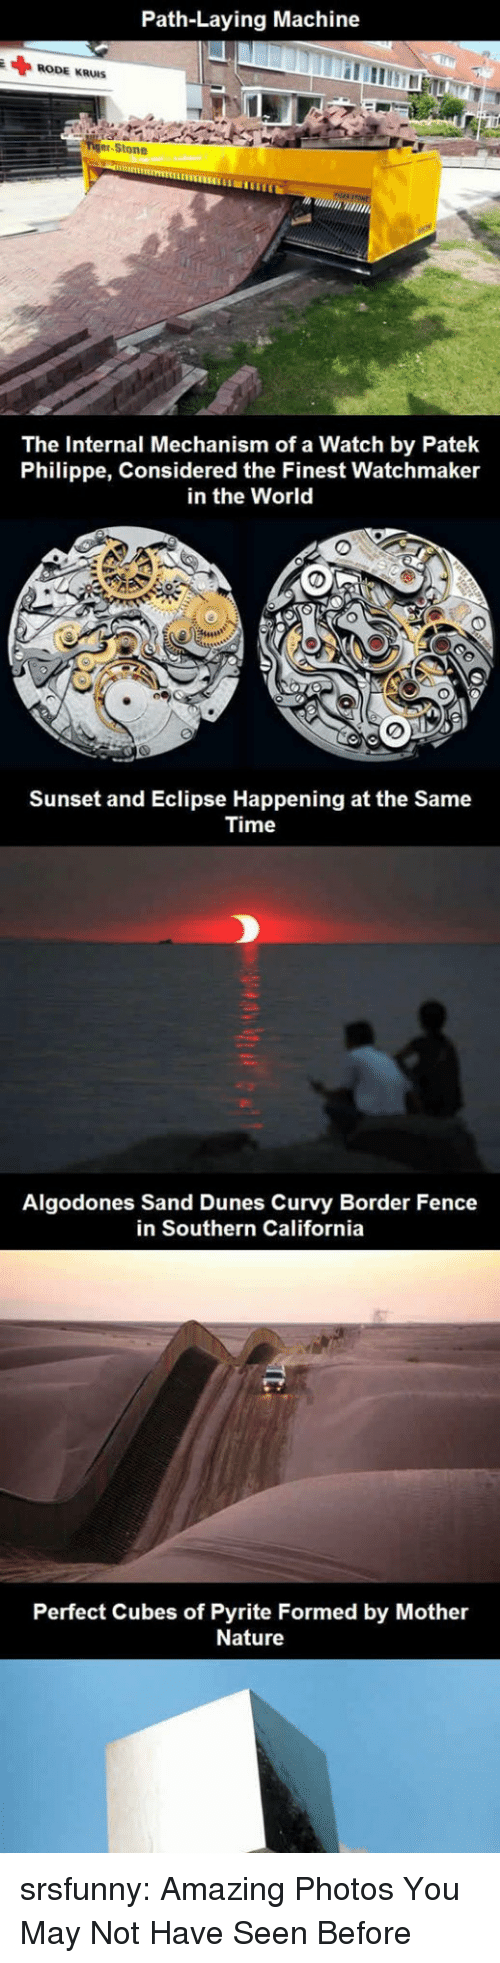 Eclipse: Path-Laying Machine  RODE KRUIS  er-Stone  The Internal Mechanism of a Watch by Patek  Philippe, Considered the Finest Watchmaker  in the World  Sunset and Eclipse Happening at the Same  Time  Algodones Sand Dunes Curvy Border Fence  in Southern California  Perfect Cubes of Pyrite Formed by Mother  Nature srsfunny:  Amazing Photos You May Not Have Seen Before